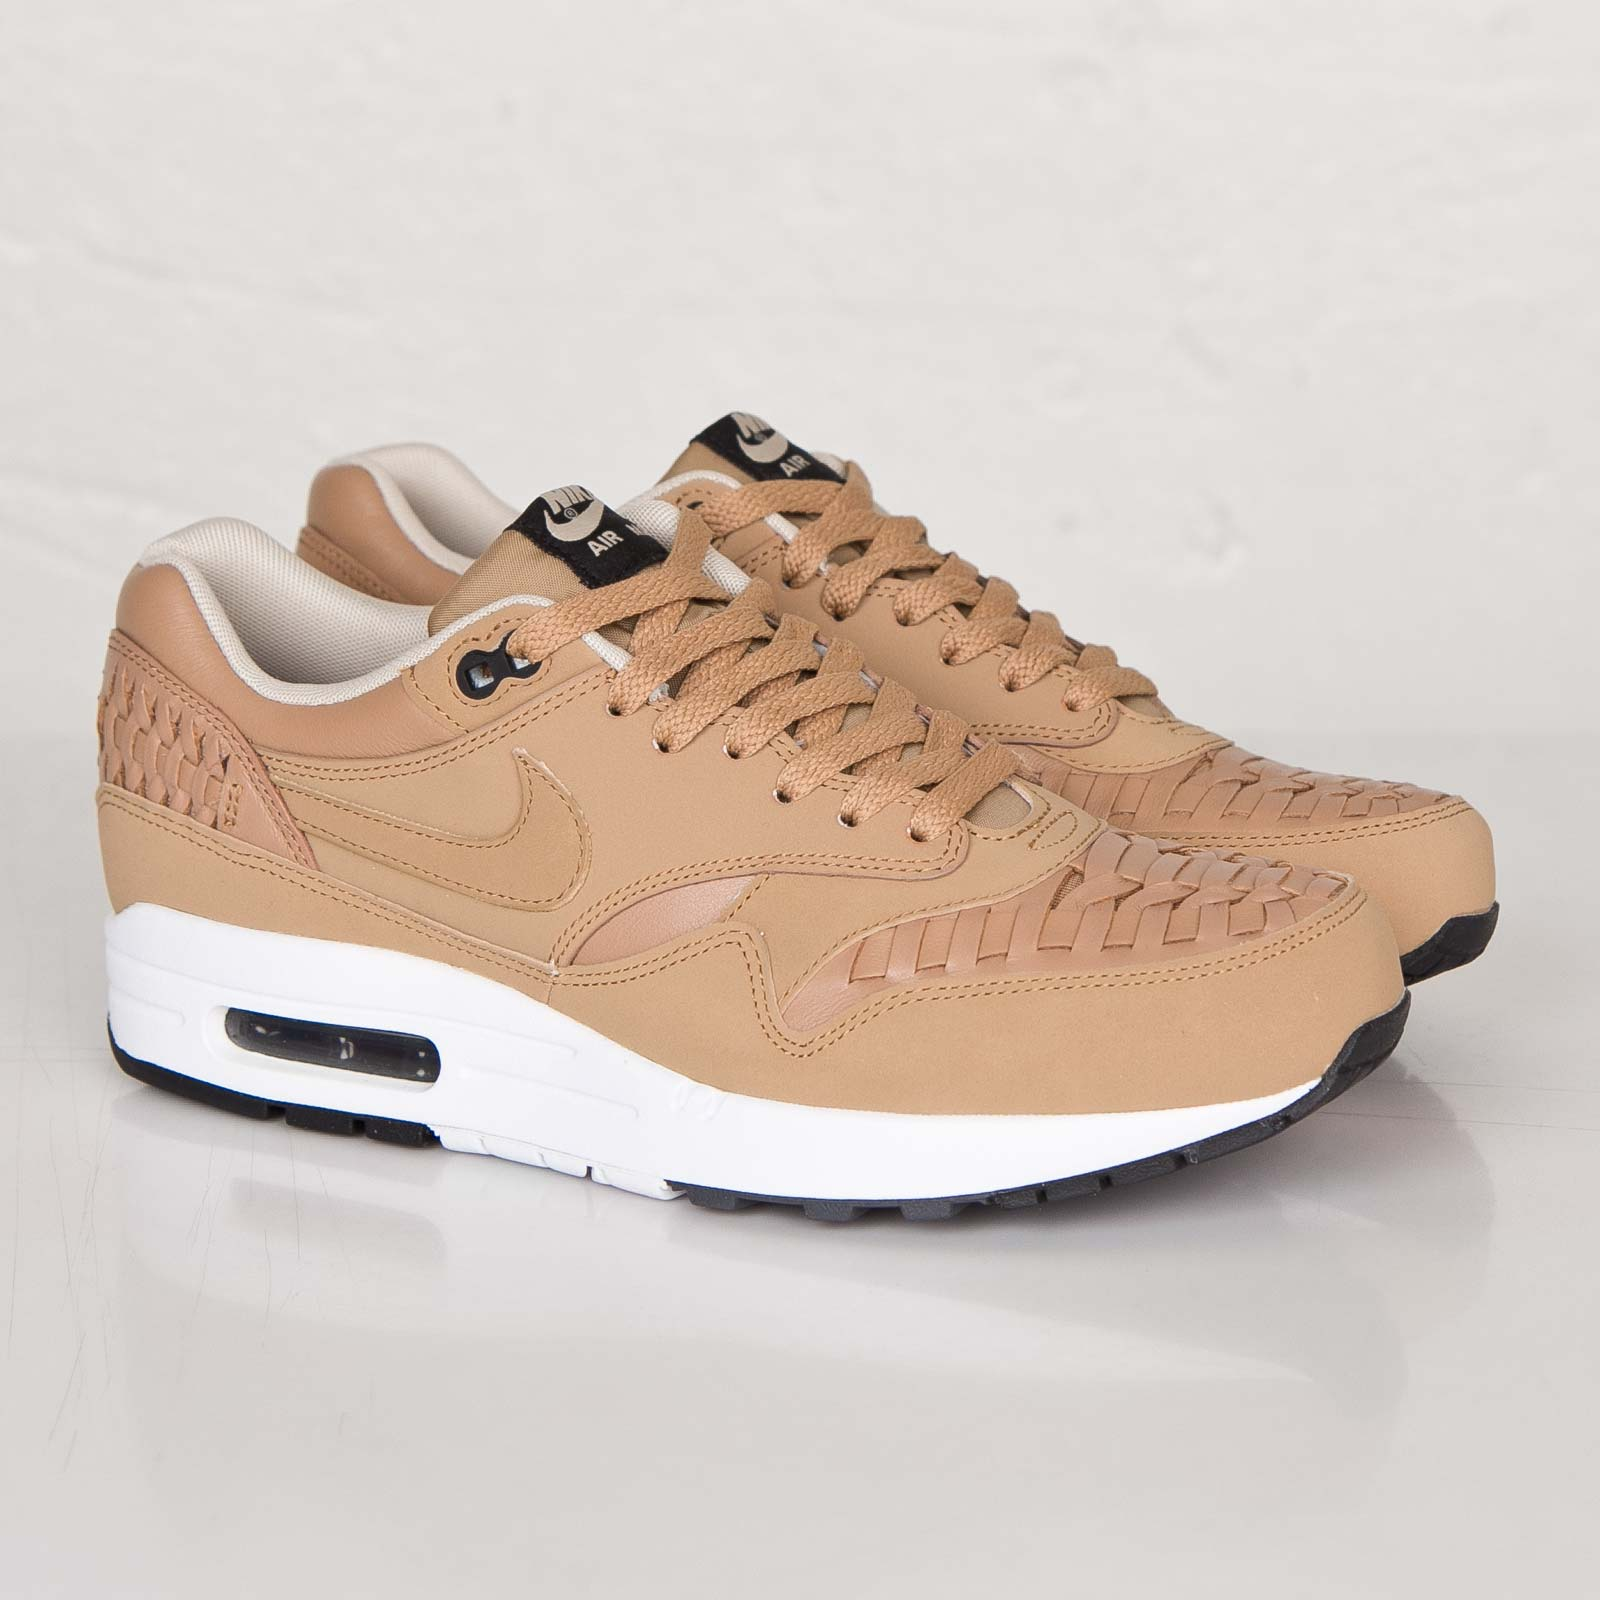 Nike Air Max 1 Woven 725232 200 Sneakersnstuff